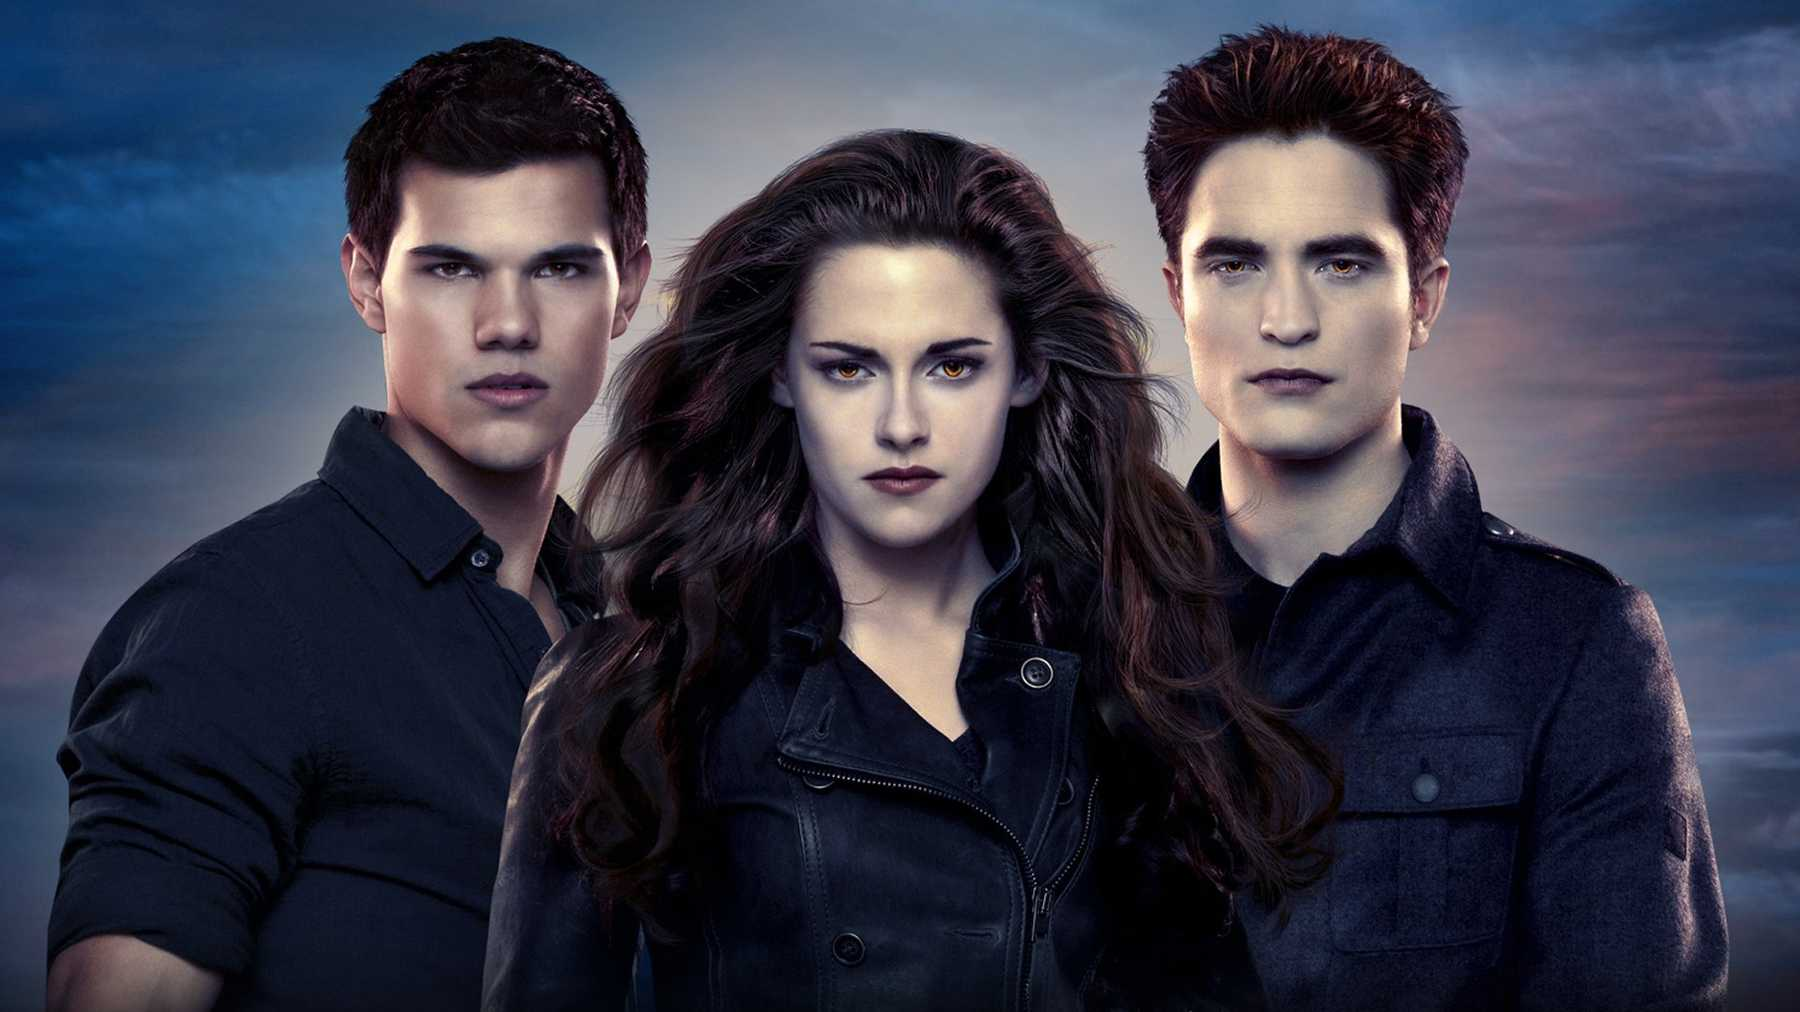 Twilight Saga Trio Poster